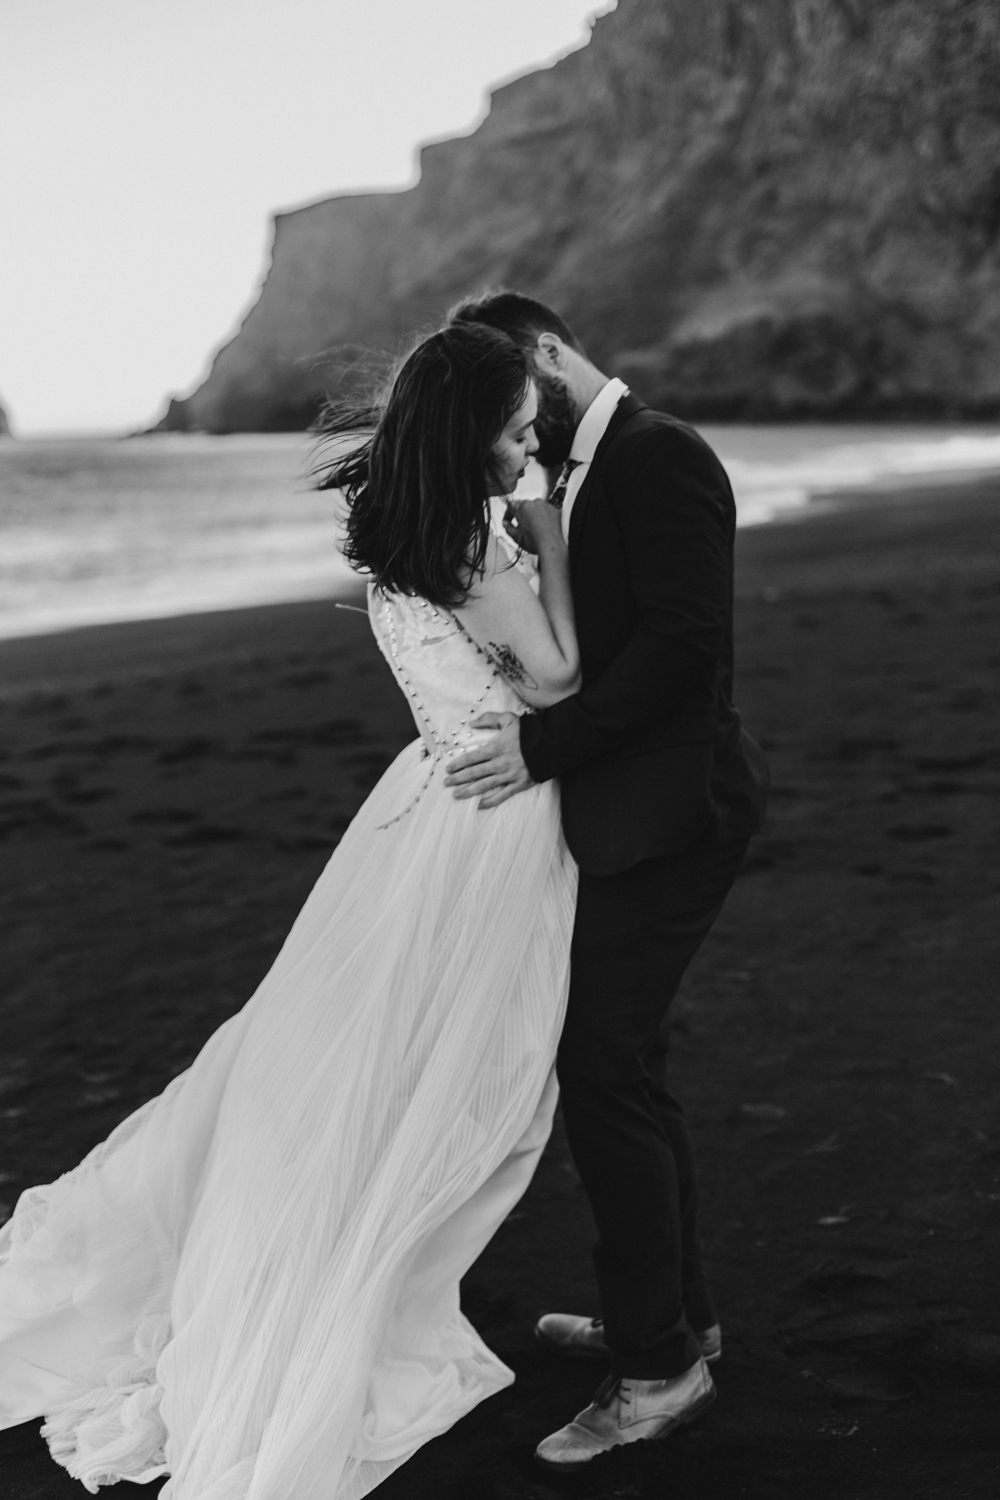 anna szczekutowicz iceland wedding photogapher elopement photographer-104.jpg